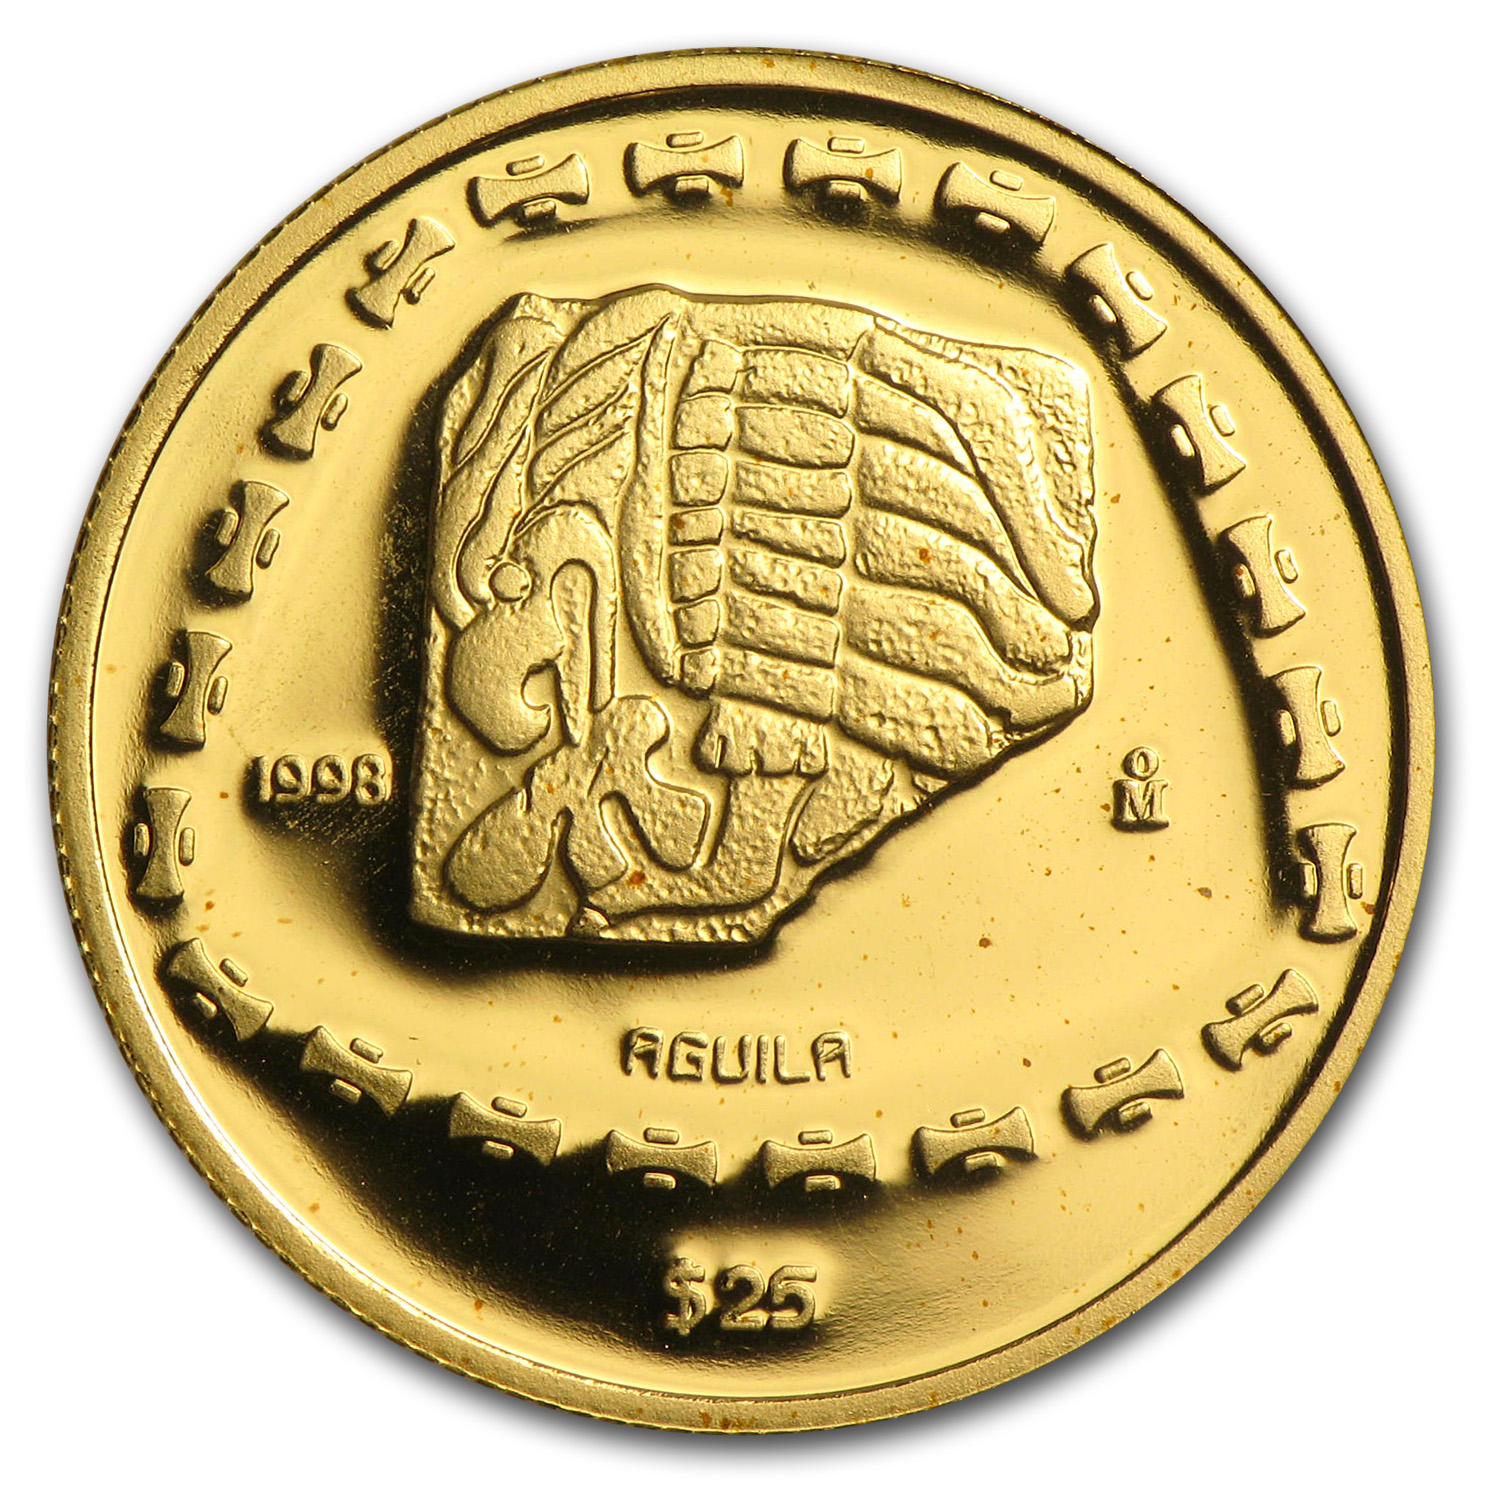 1998 Mexico 25 Pesos Gold Aguila Proof